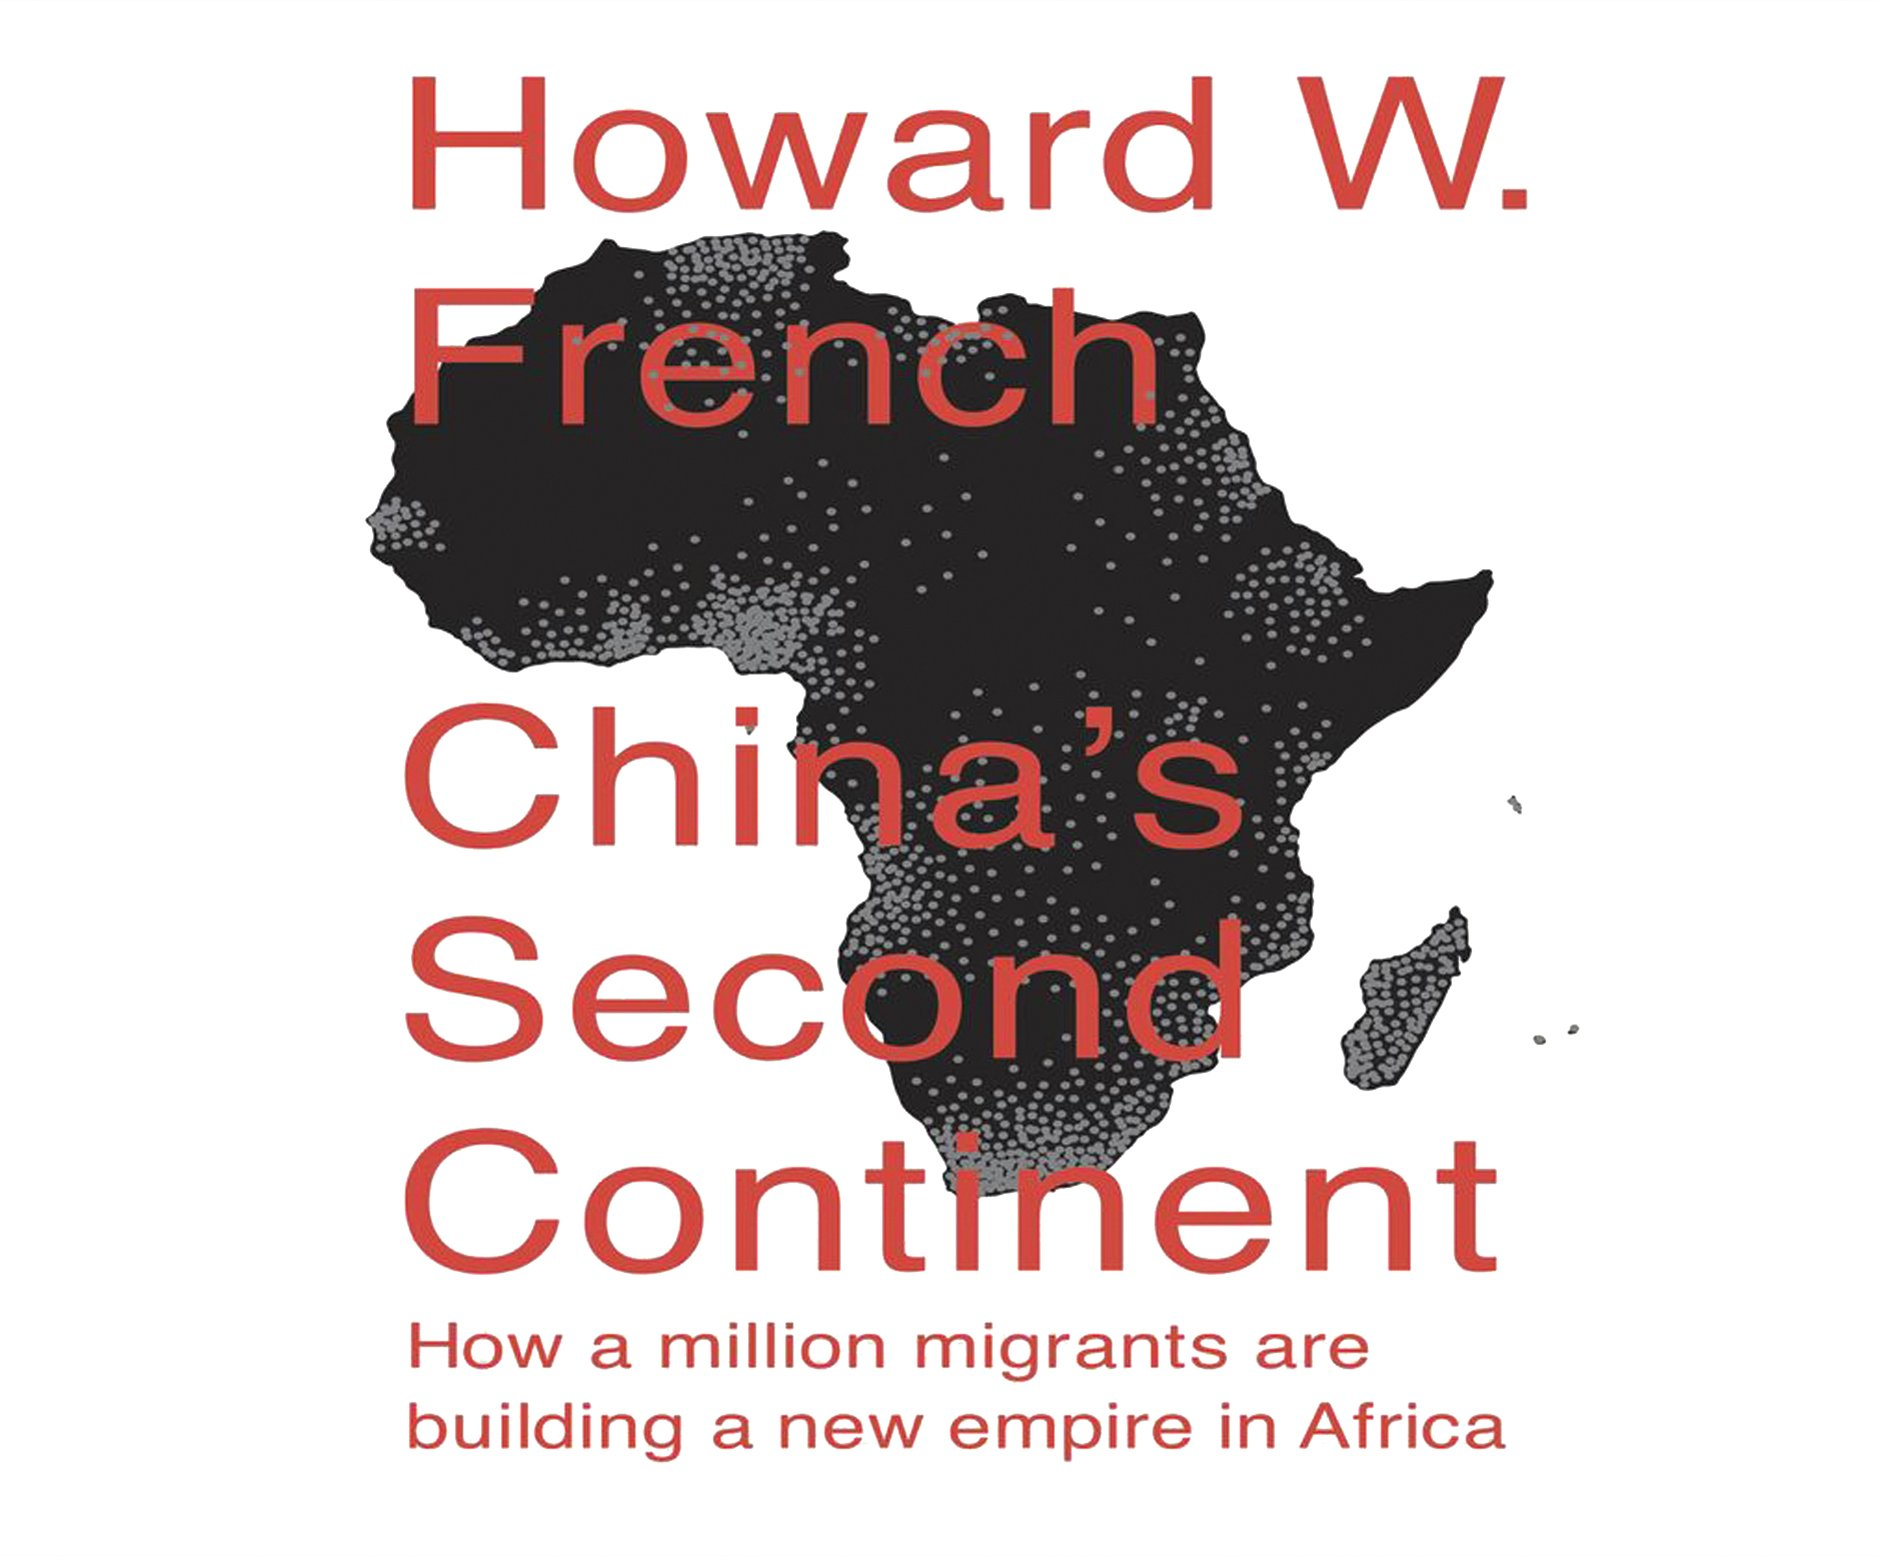 China's Second Continent: How a Million Migrants Are Building a New Empire  in Africa: Howard French, Don Hagen: 9781520019635: Amazon.com: Books